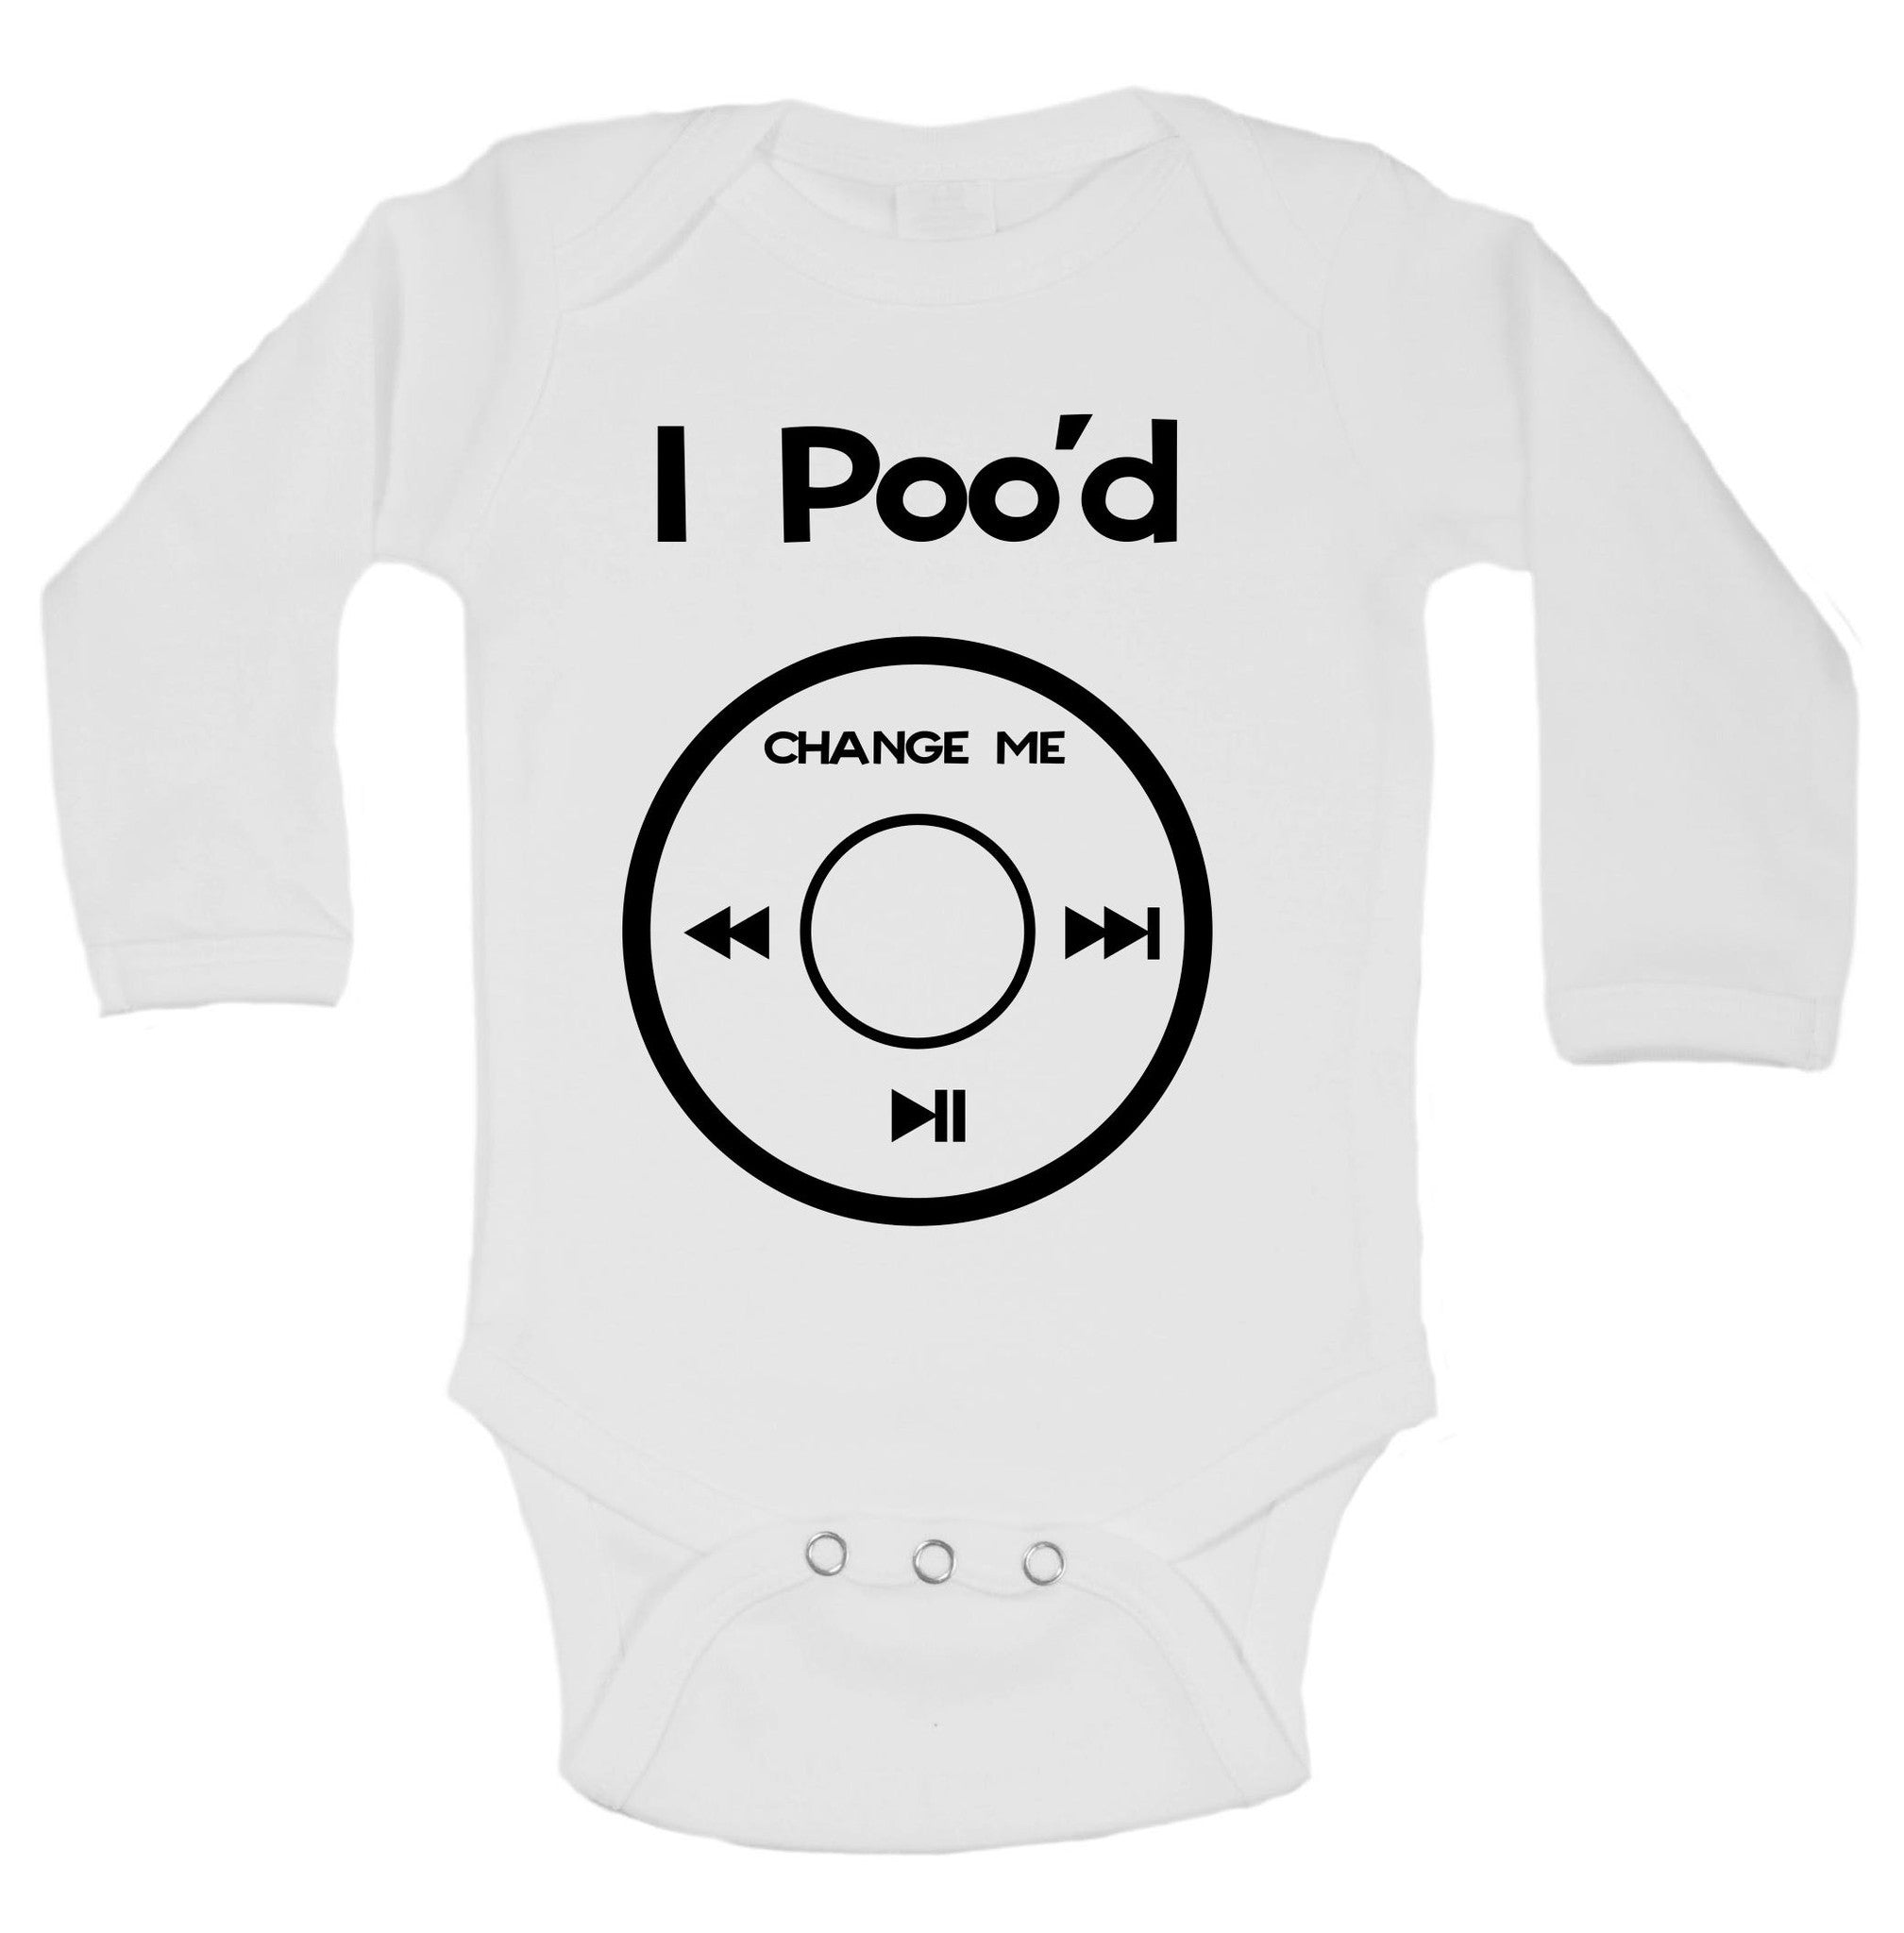 I Poo'd Change Me Funny Kids Onesie - B41 - Funny Shirts Tank Tops Burnouts and Triblends  - 1